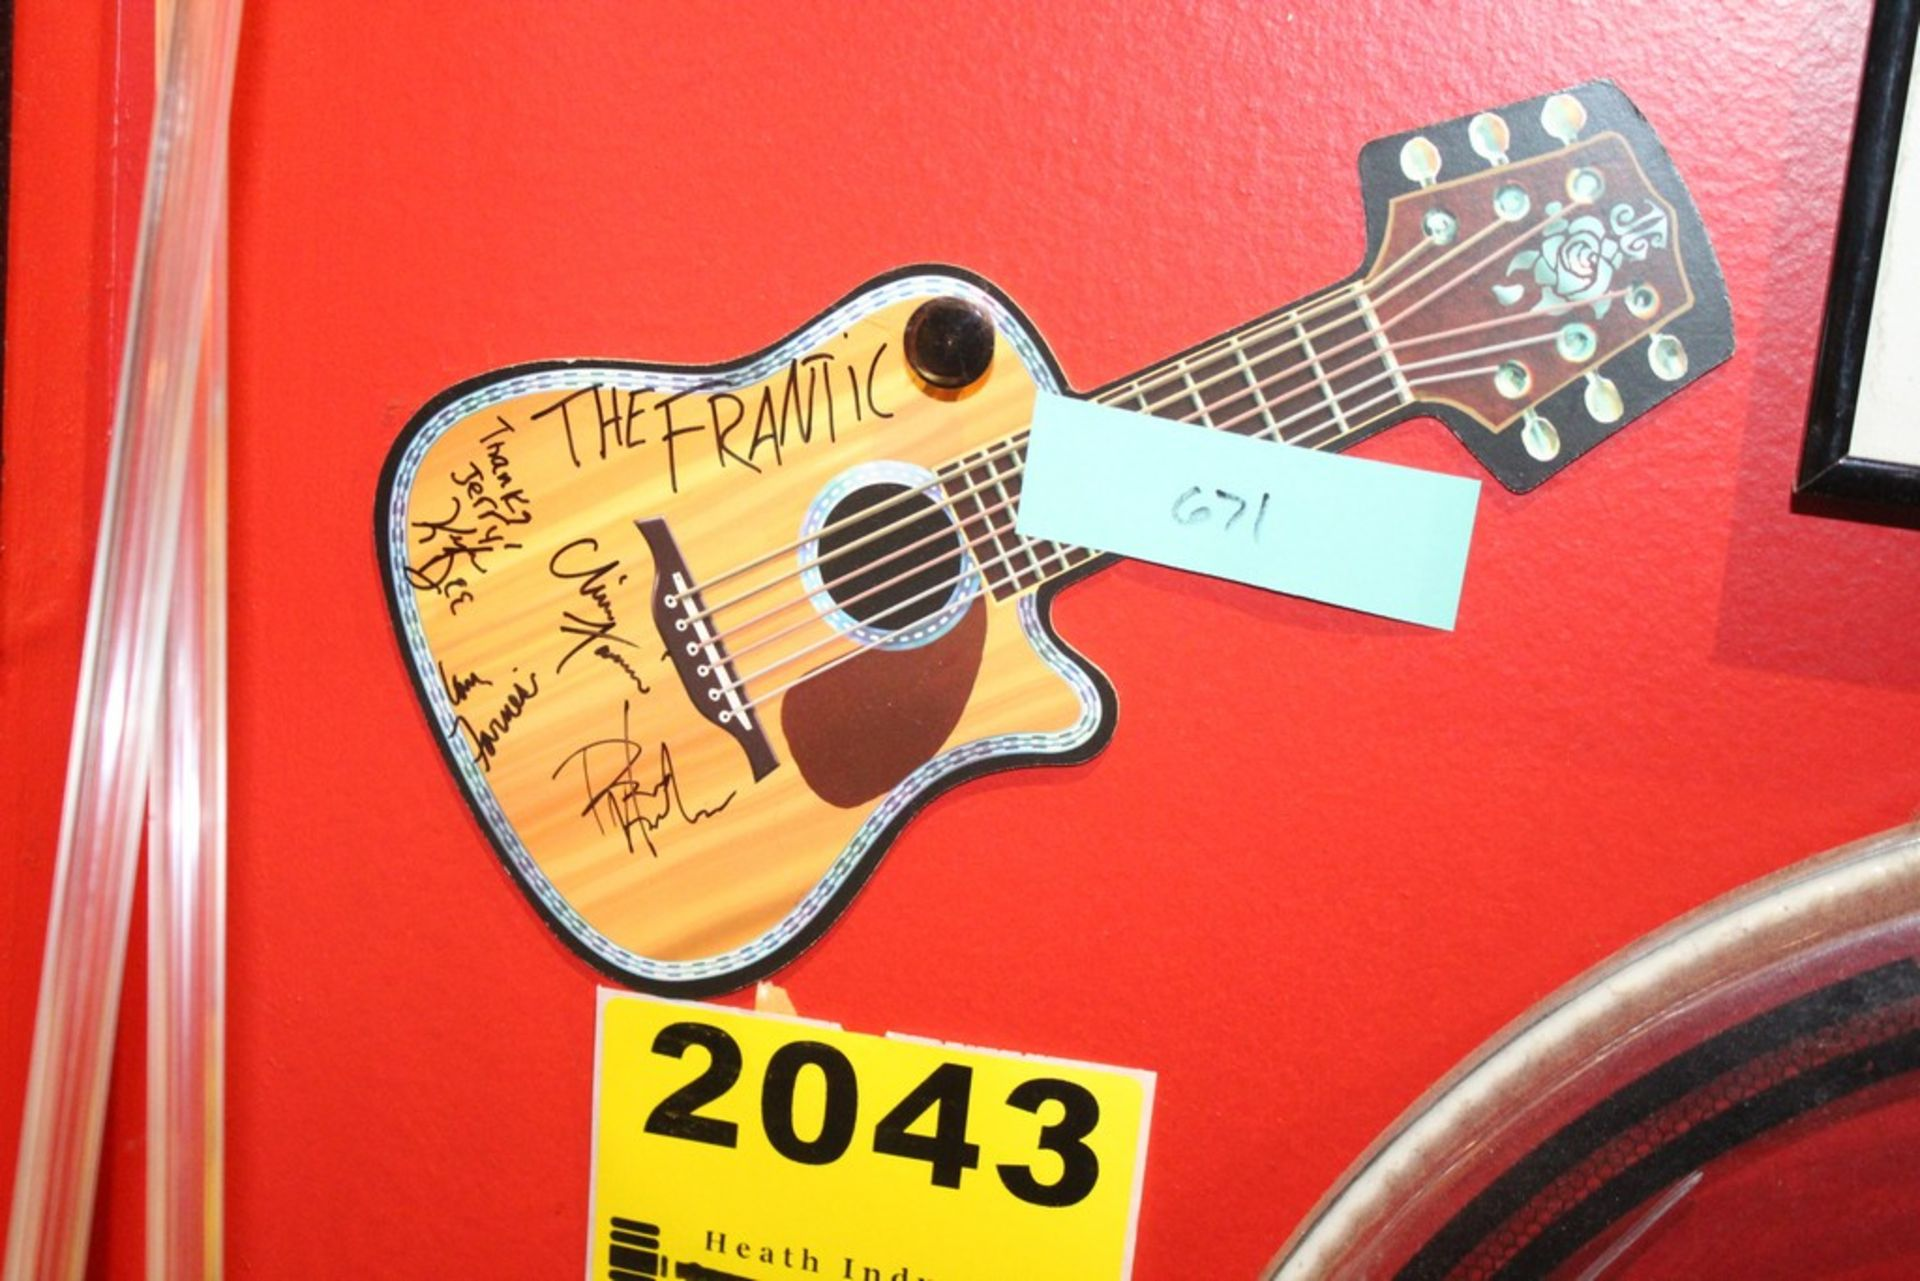 Lot 2043 - The Frantic Signed Postcard Guitar Shaped